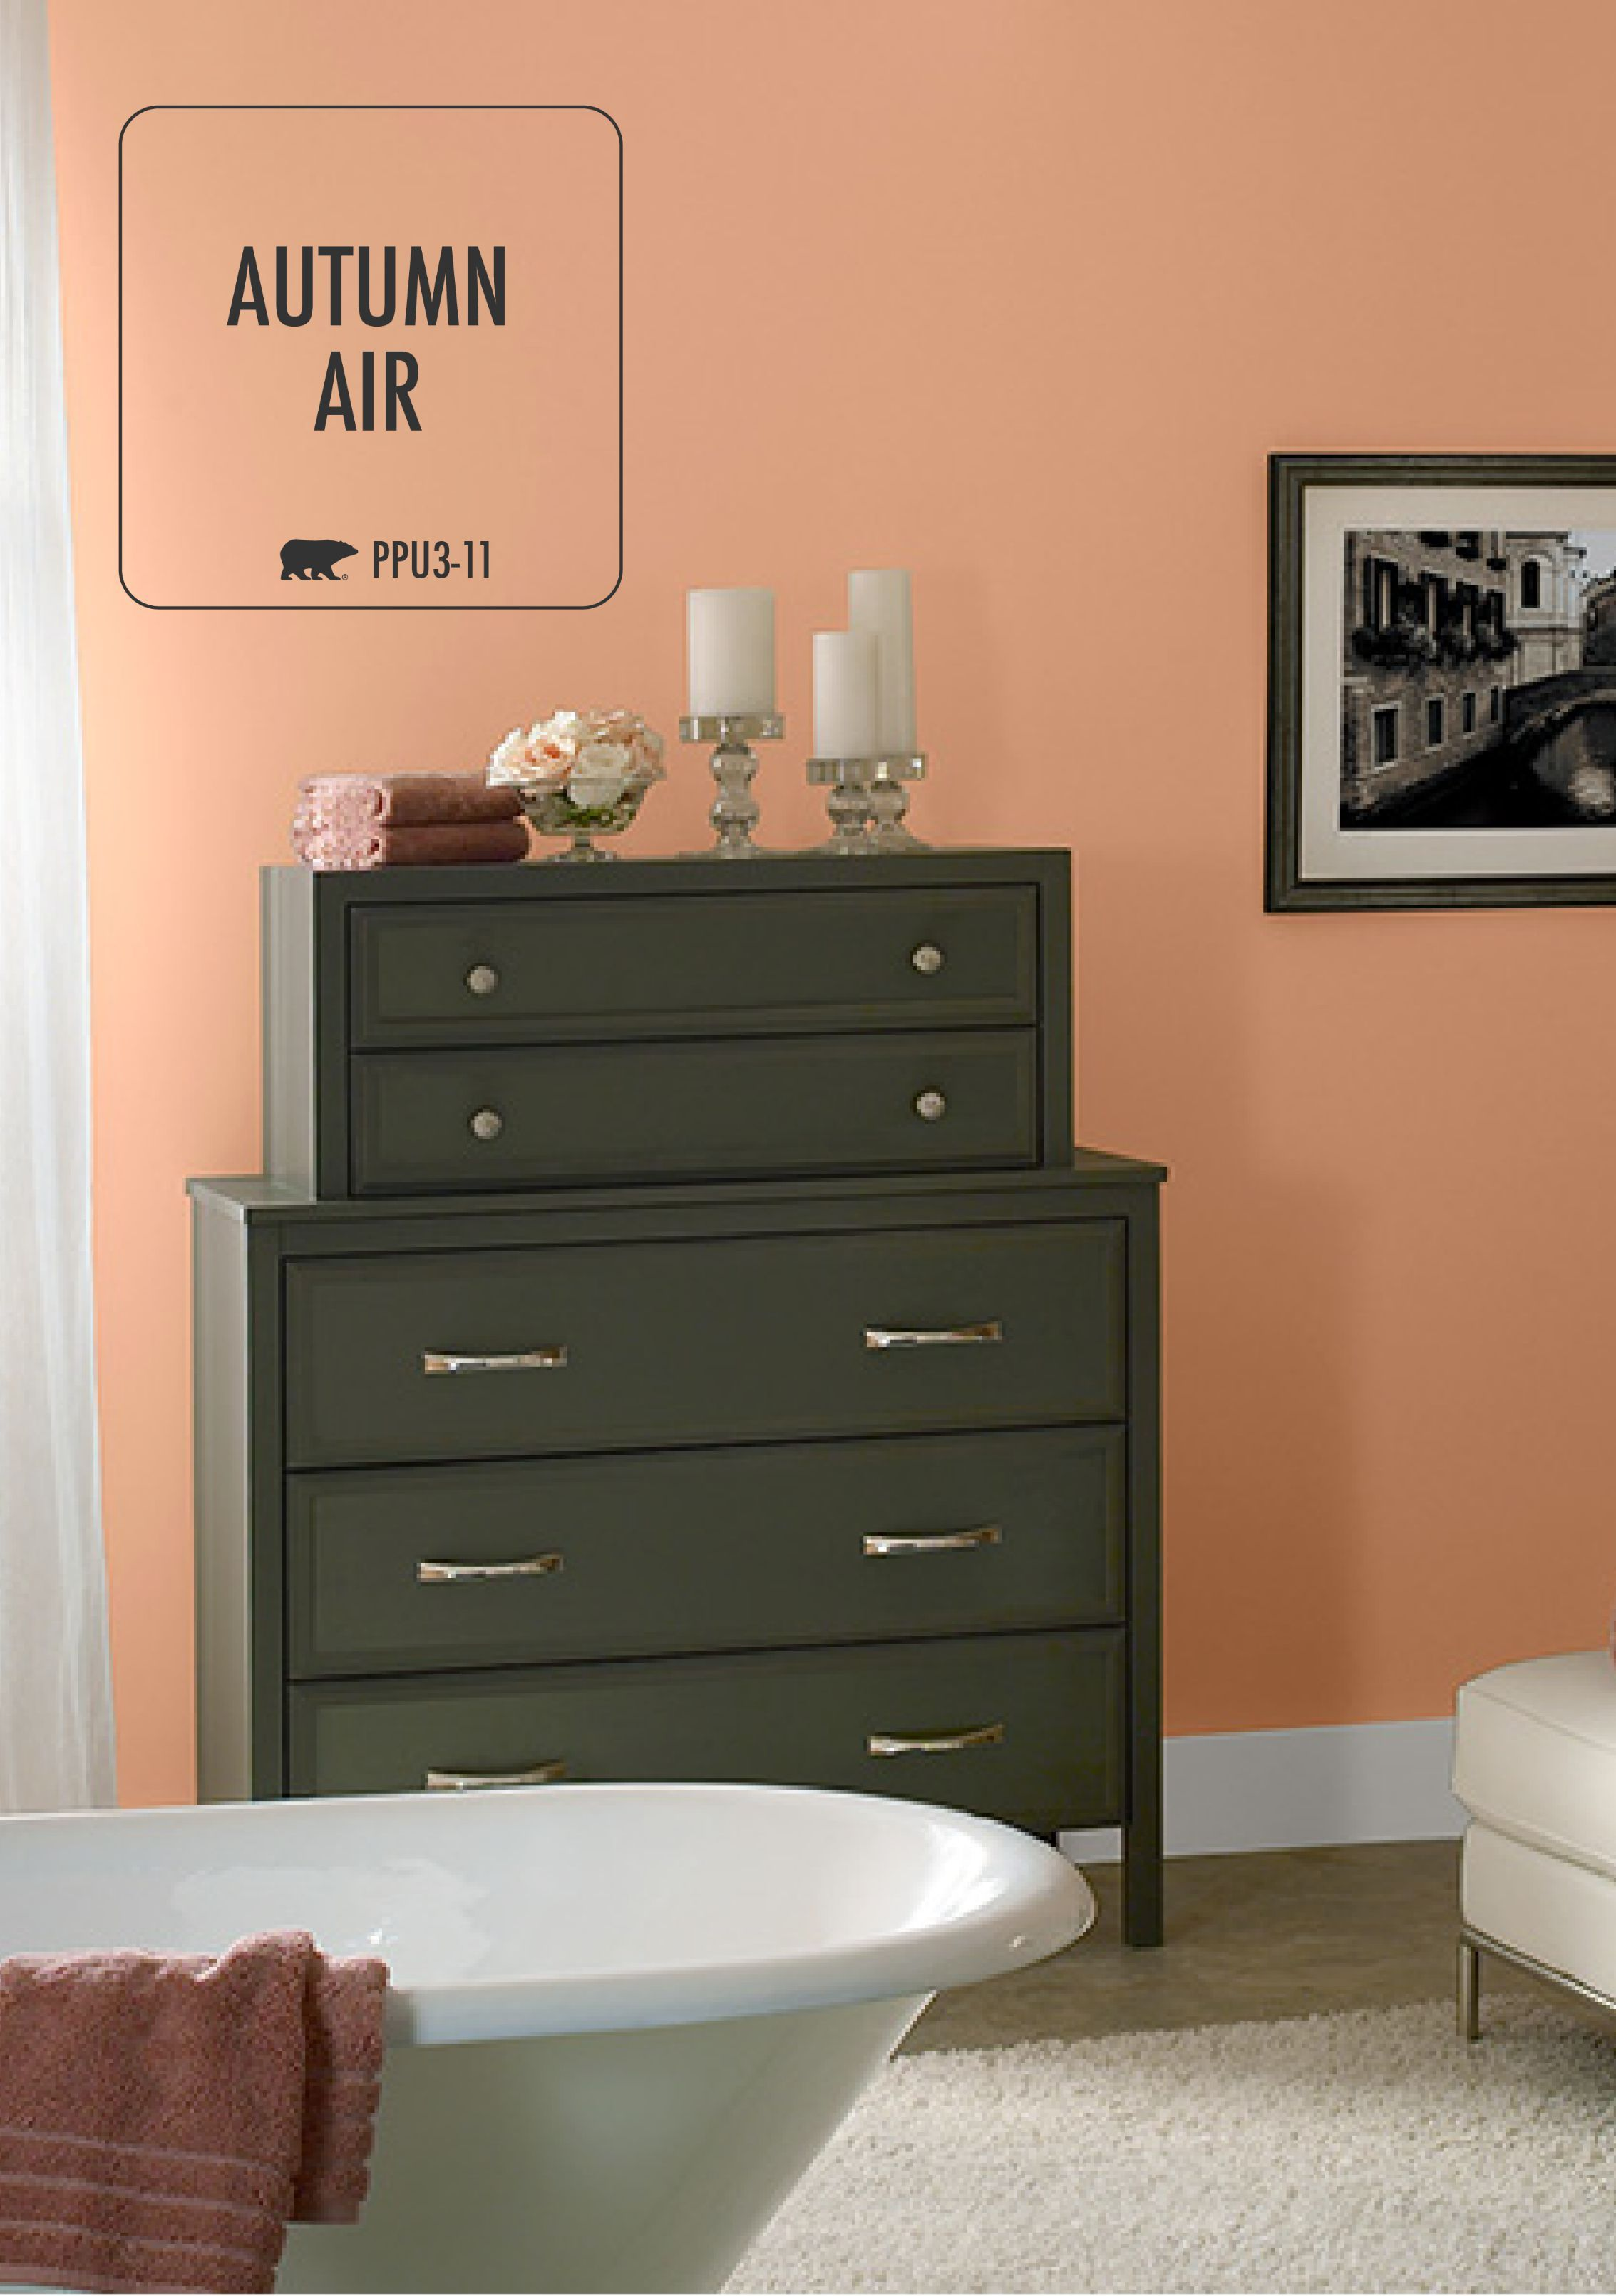 Love The Look Of Combining BEHR Paint In Autumn Air Orange With Dark  Furniture Pieces? Then This Room Decor Is Sure To Inspire You To Add A  Unique Color ...